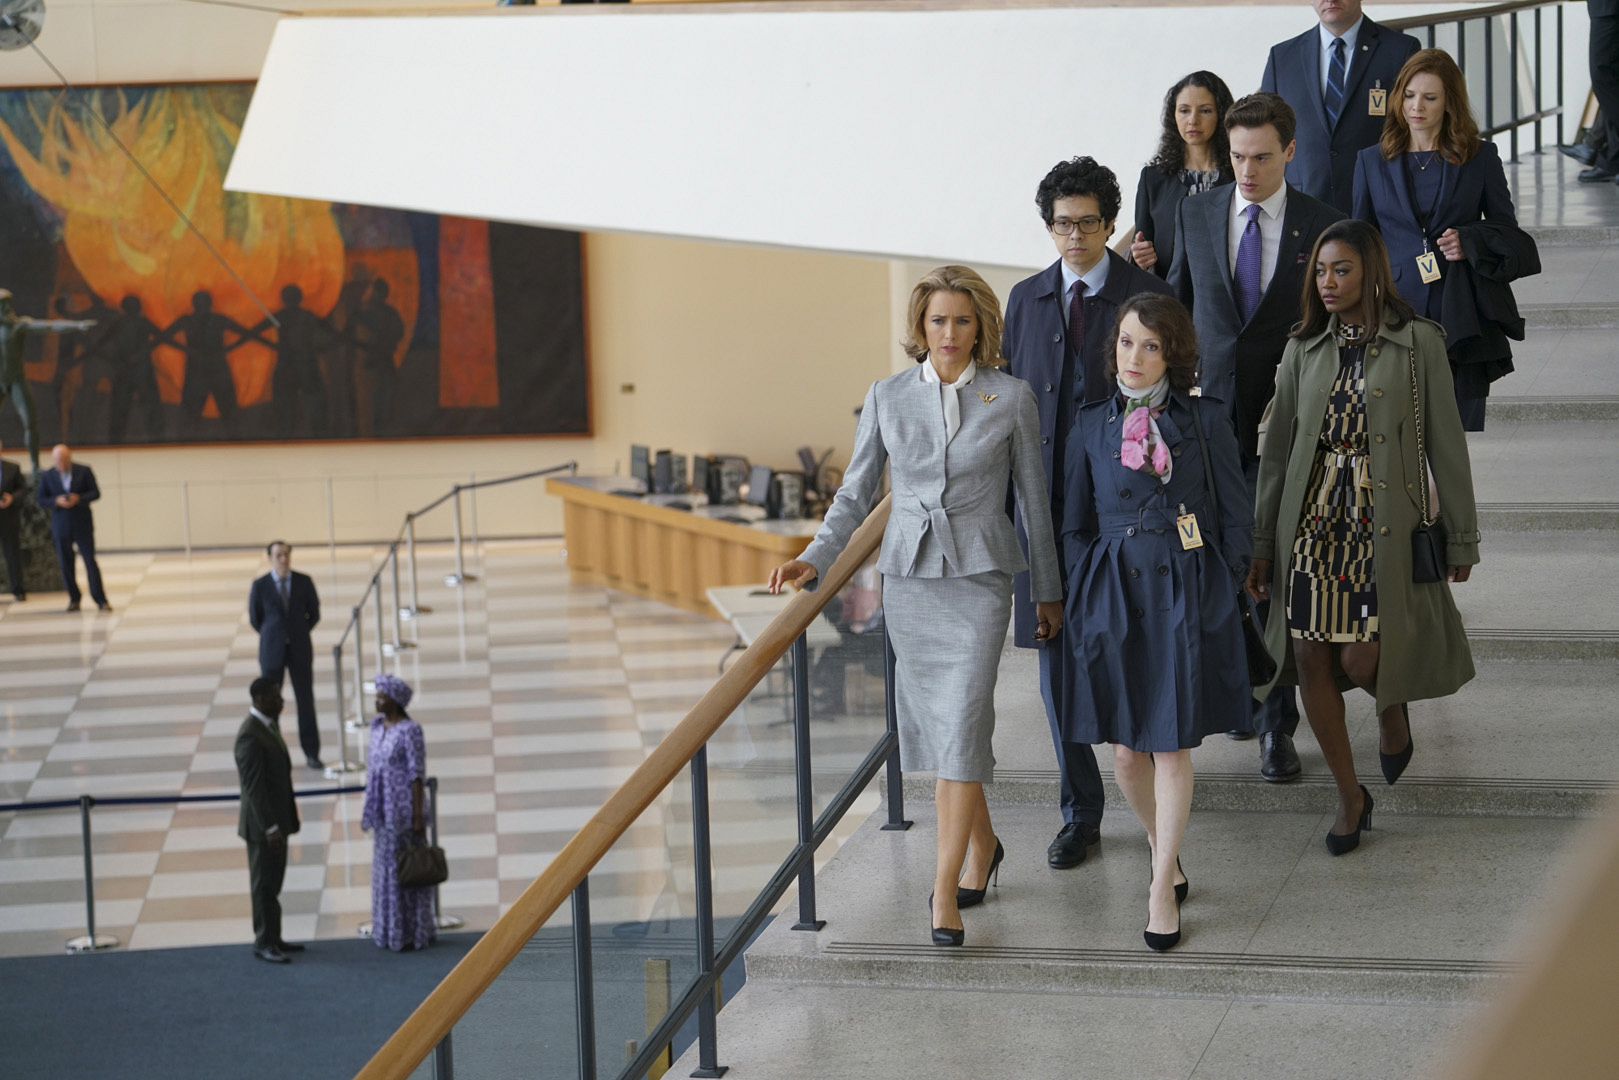 5. The Team From Madam Secretary